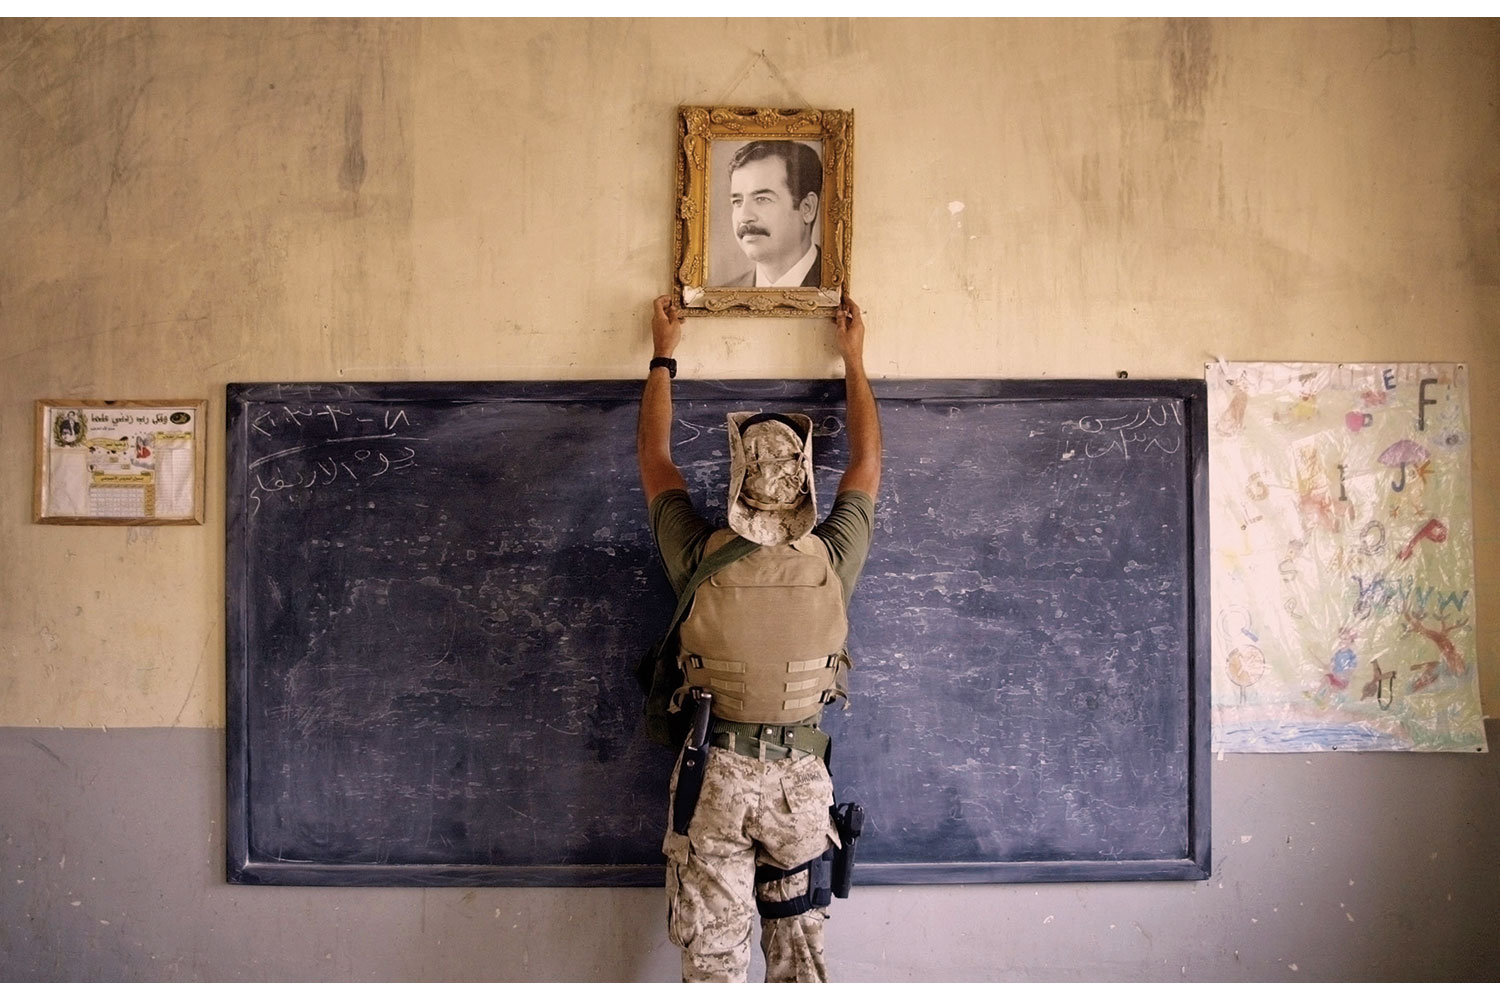 From Chris Hondros' Testament, A U.S. Marine pulls down a picture of Saddam Hussein at a school in Al-Kut, Iraq.